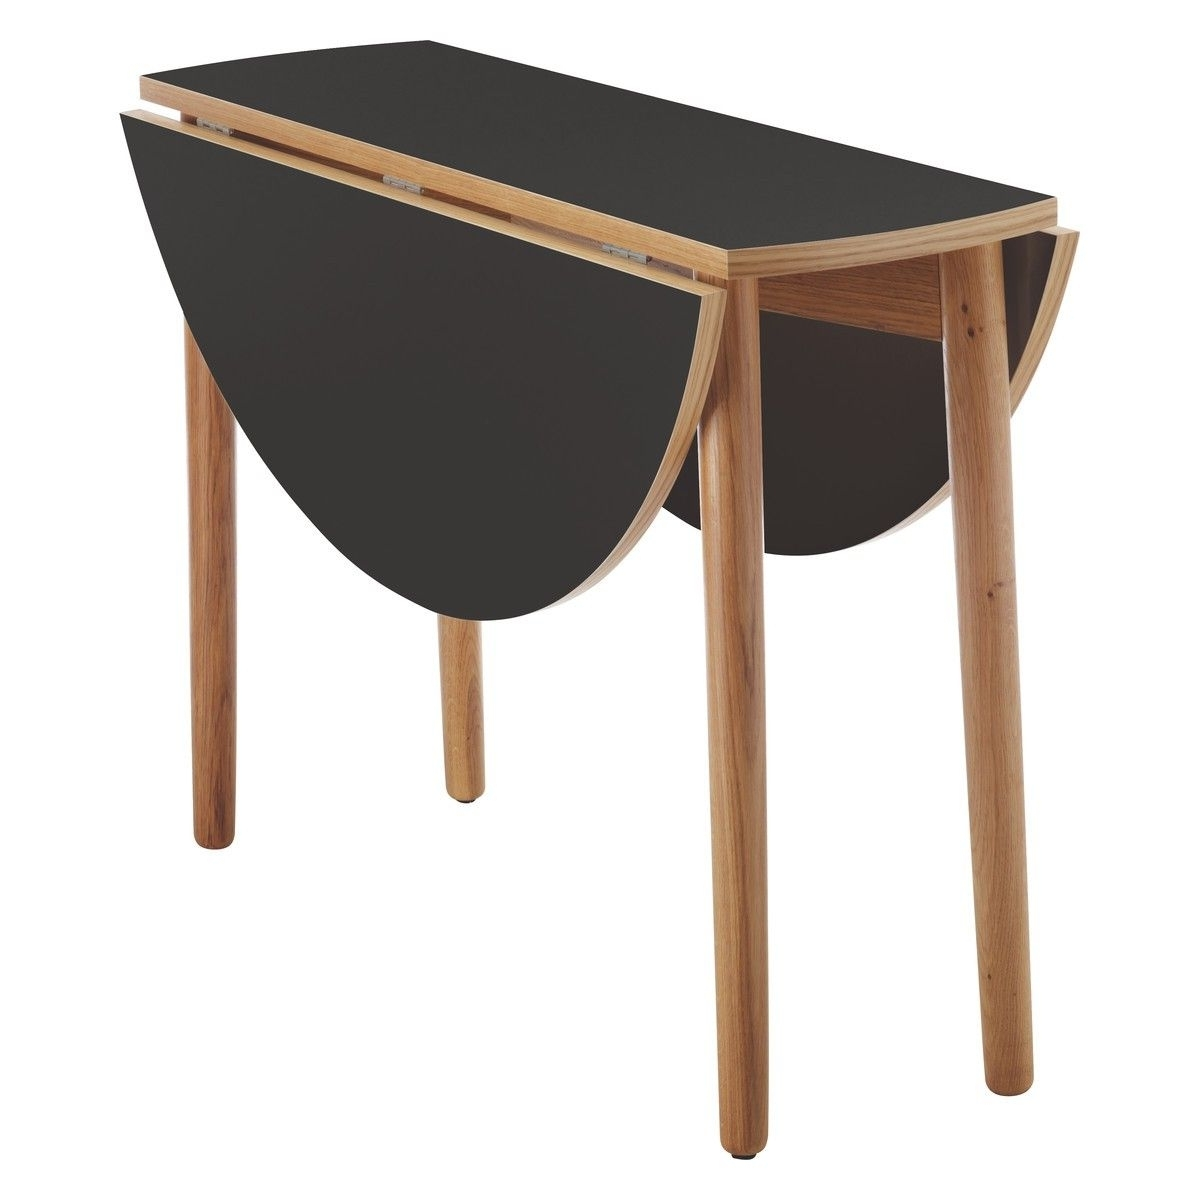 Office Project Regarding Dining Tables With 2 Seater (View 14 of 25)